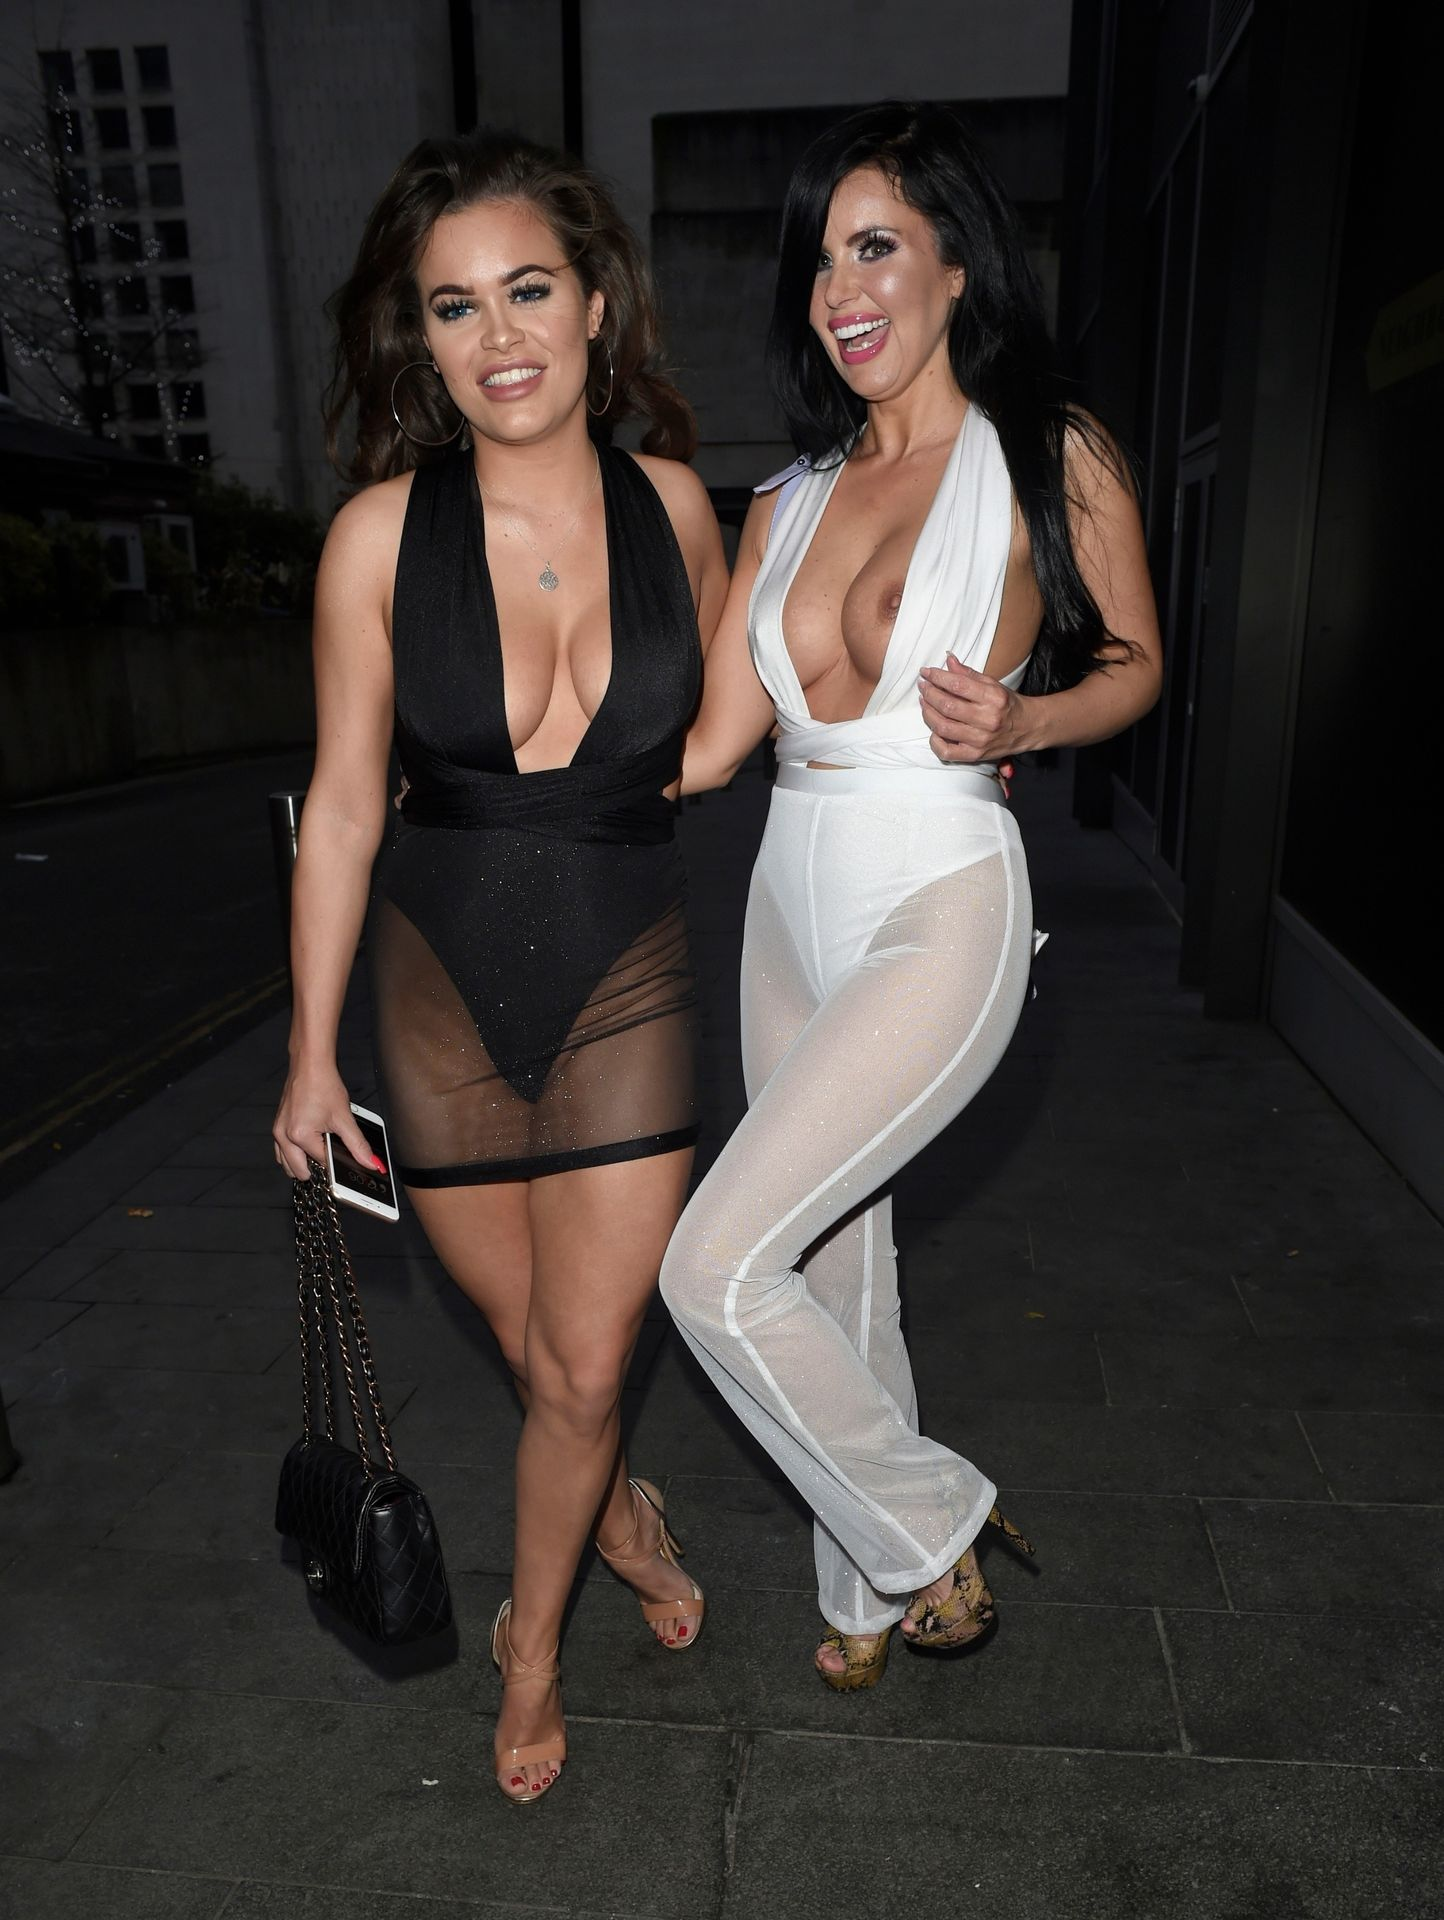 Rhianne Saxby & Sarah Longbottom Look Hot In Manchester 0007